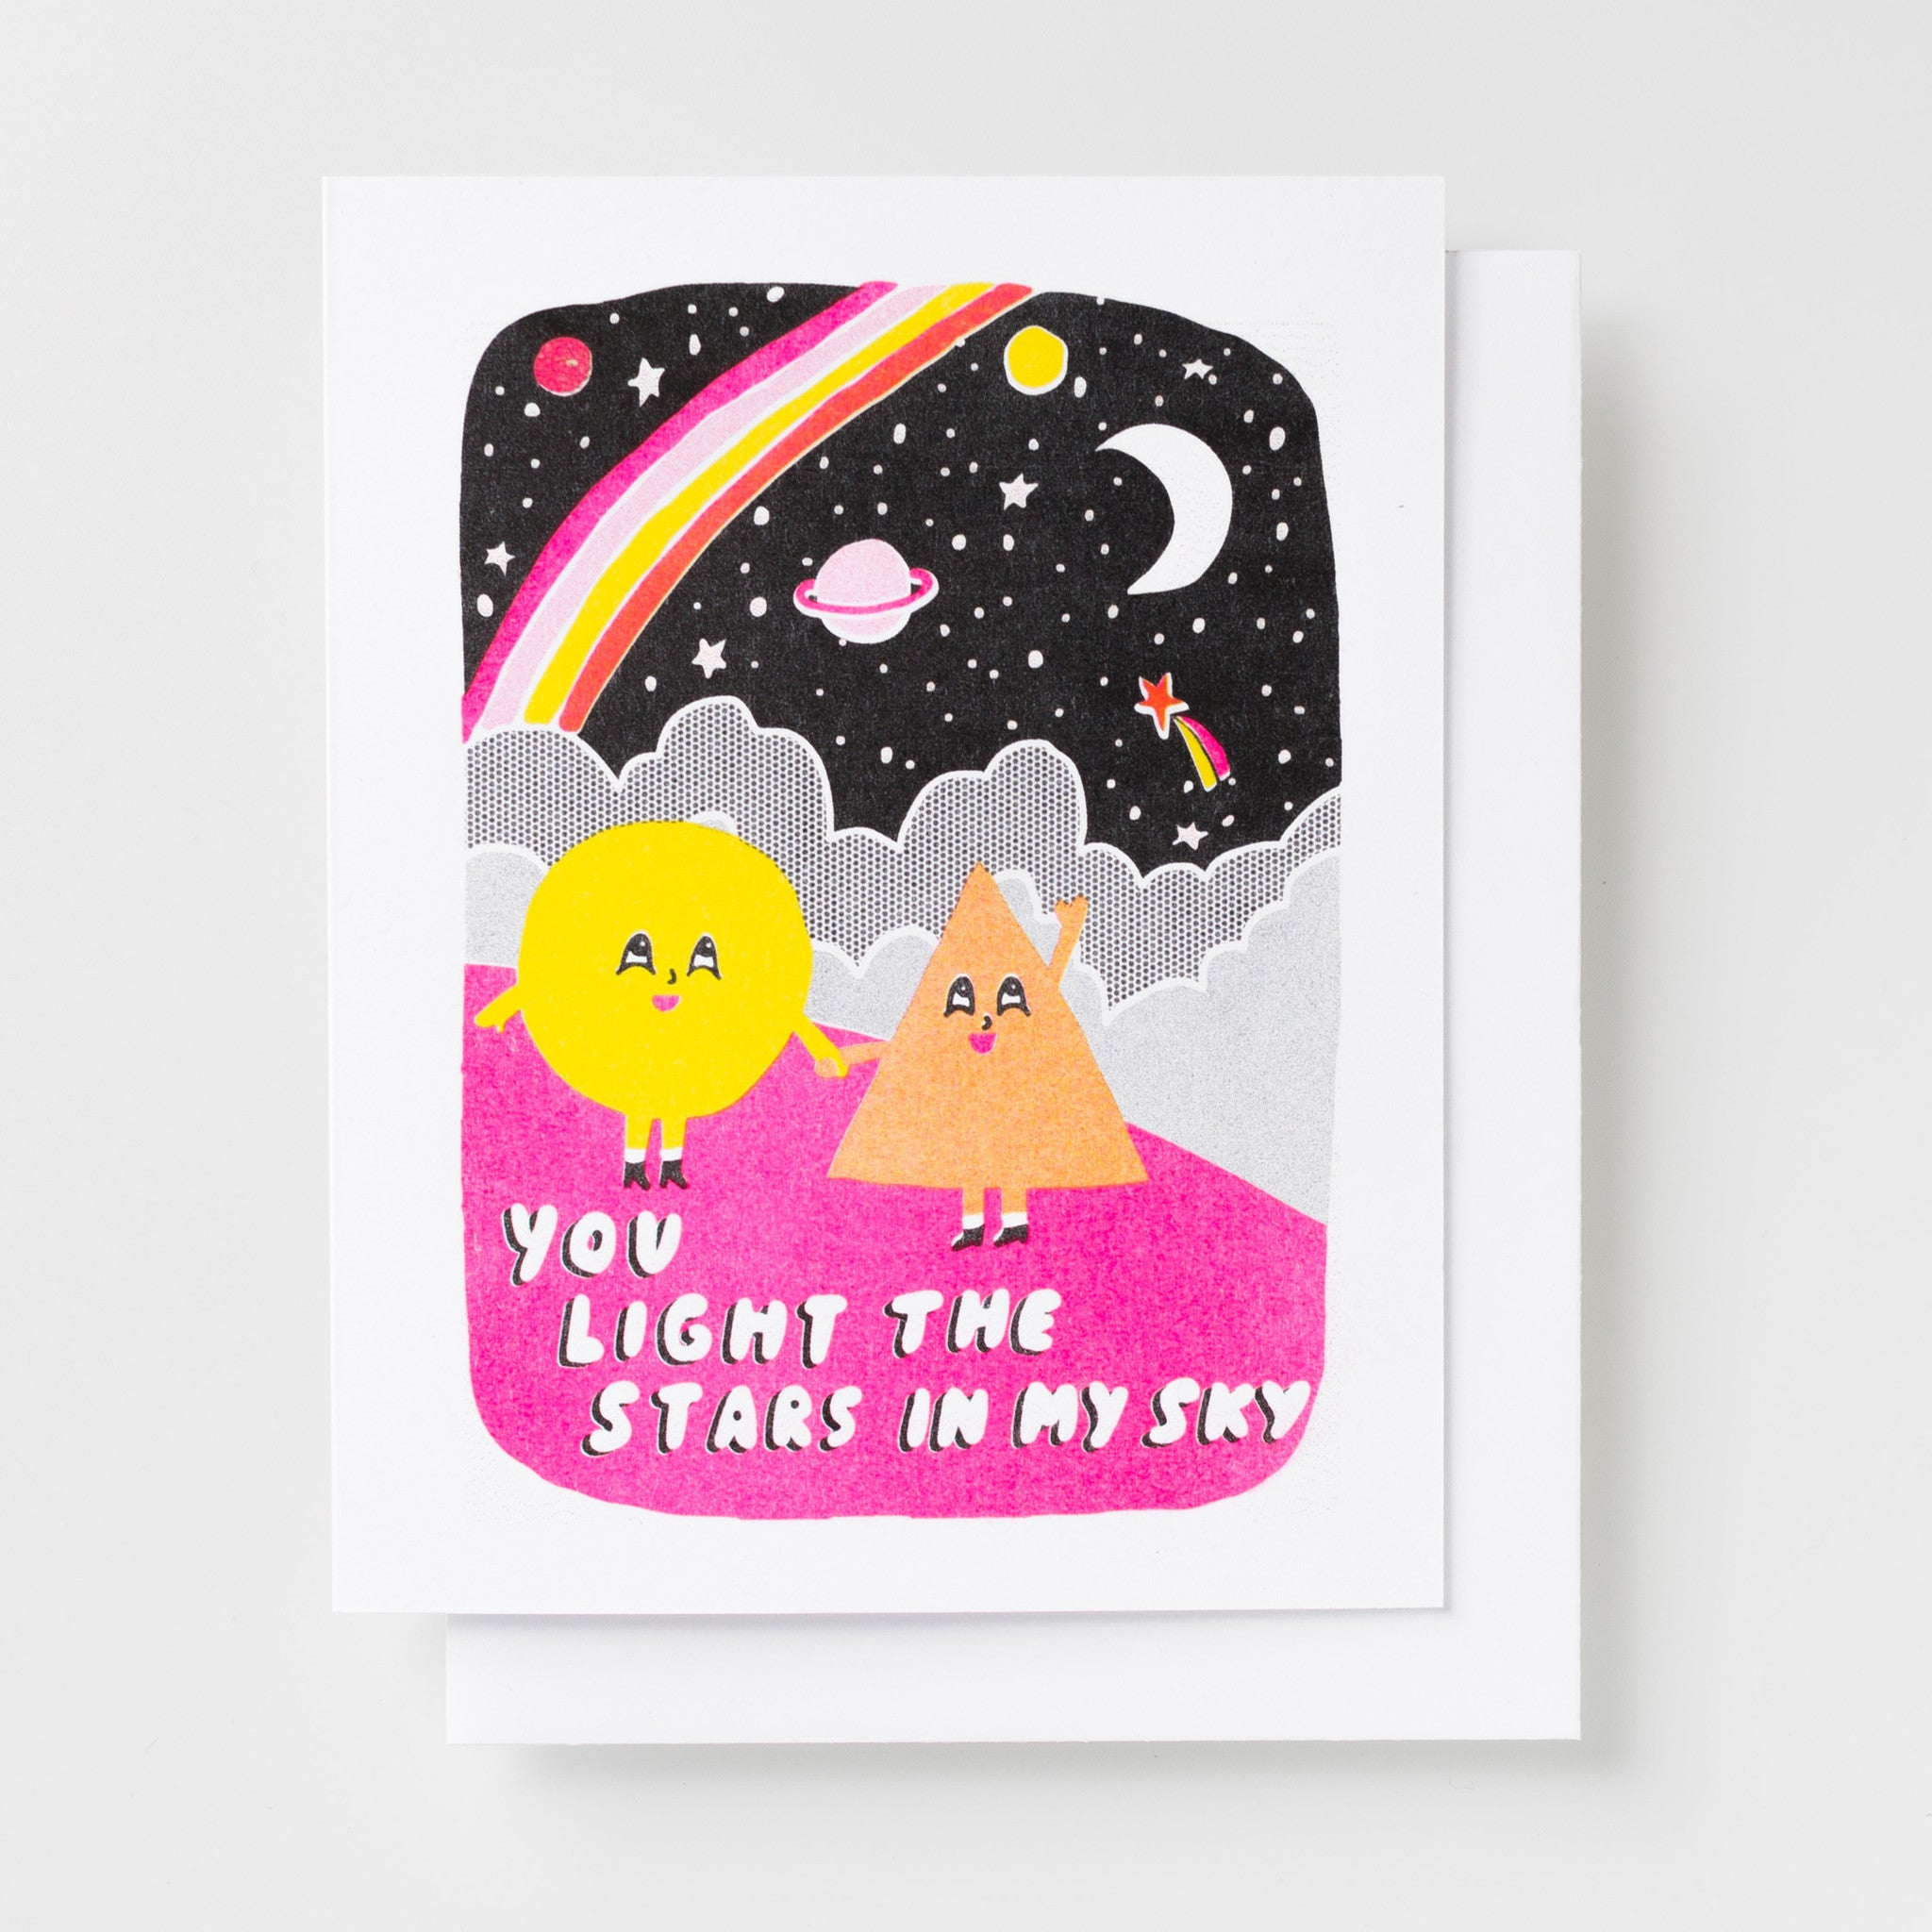 You Light The Stars - Risograph Card